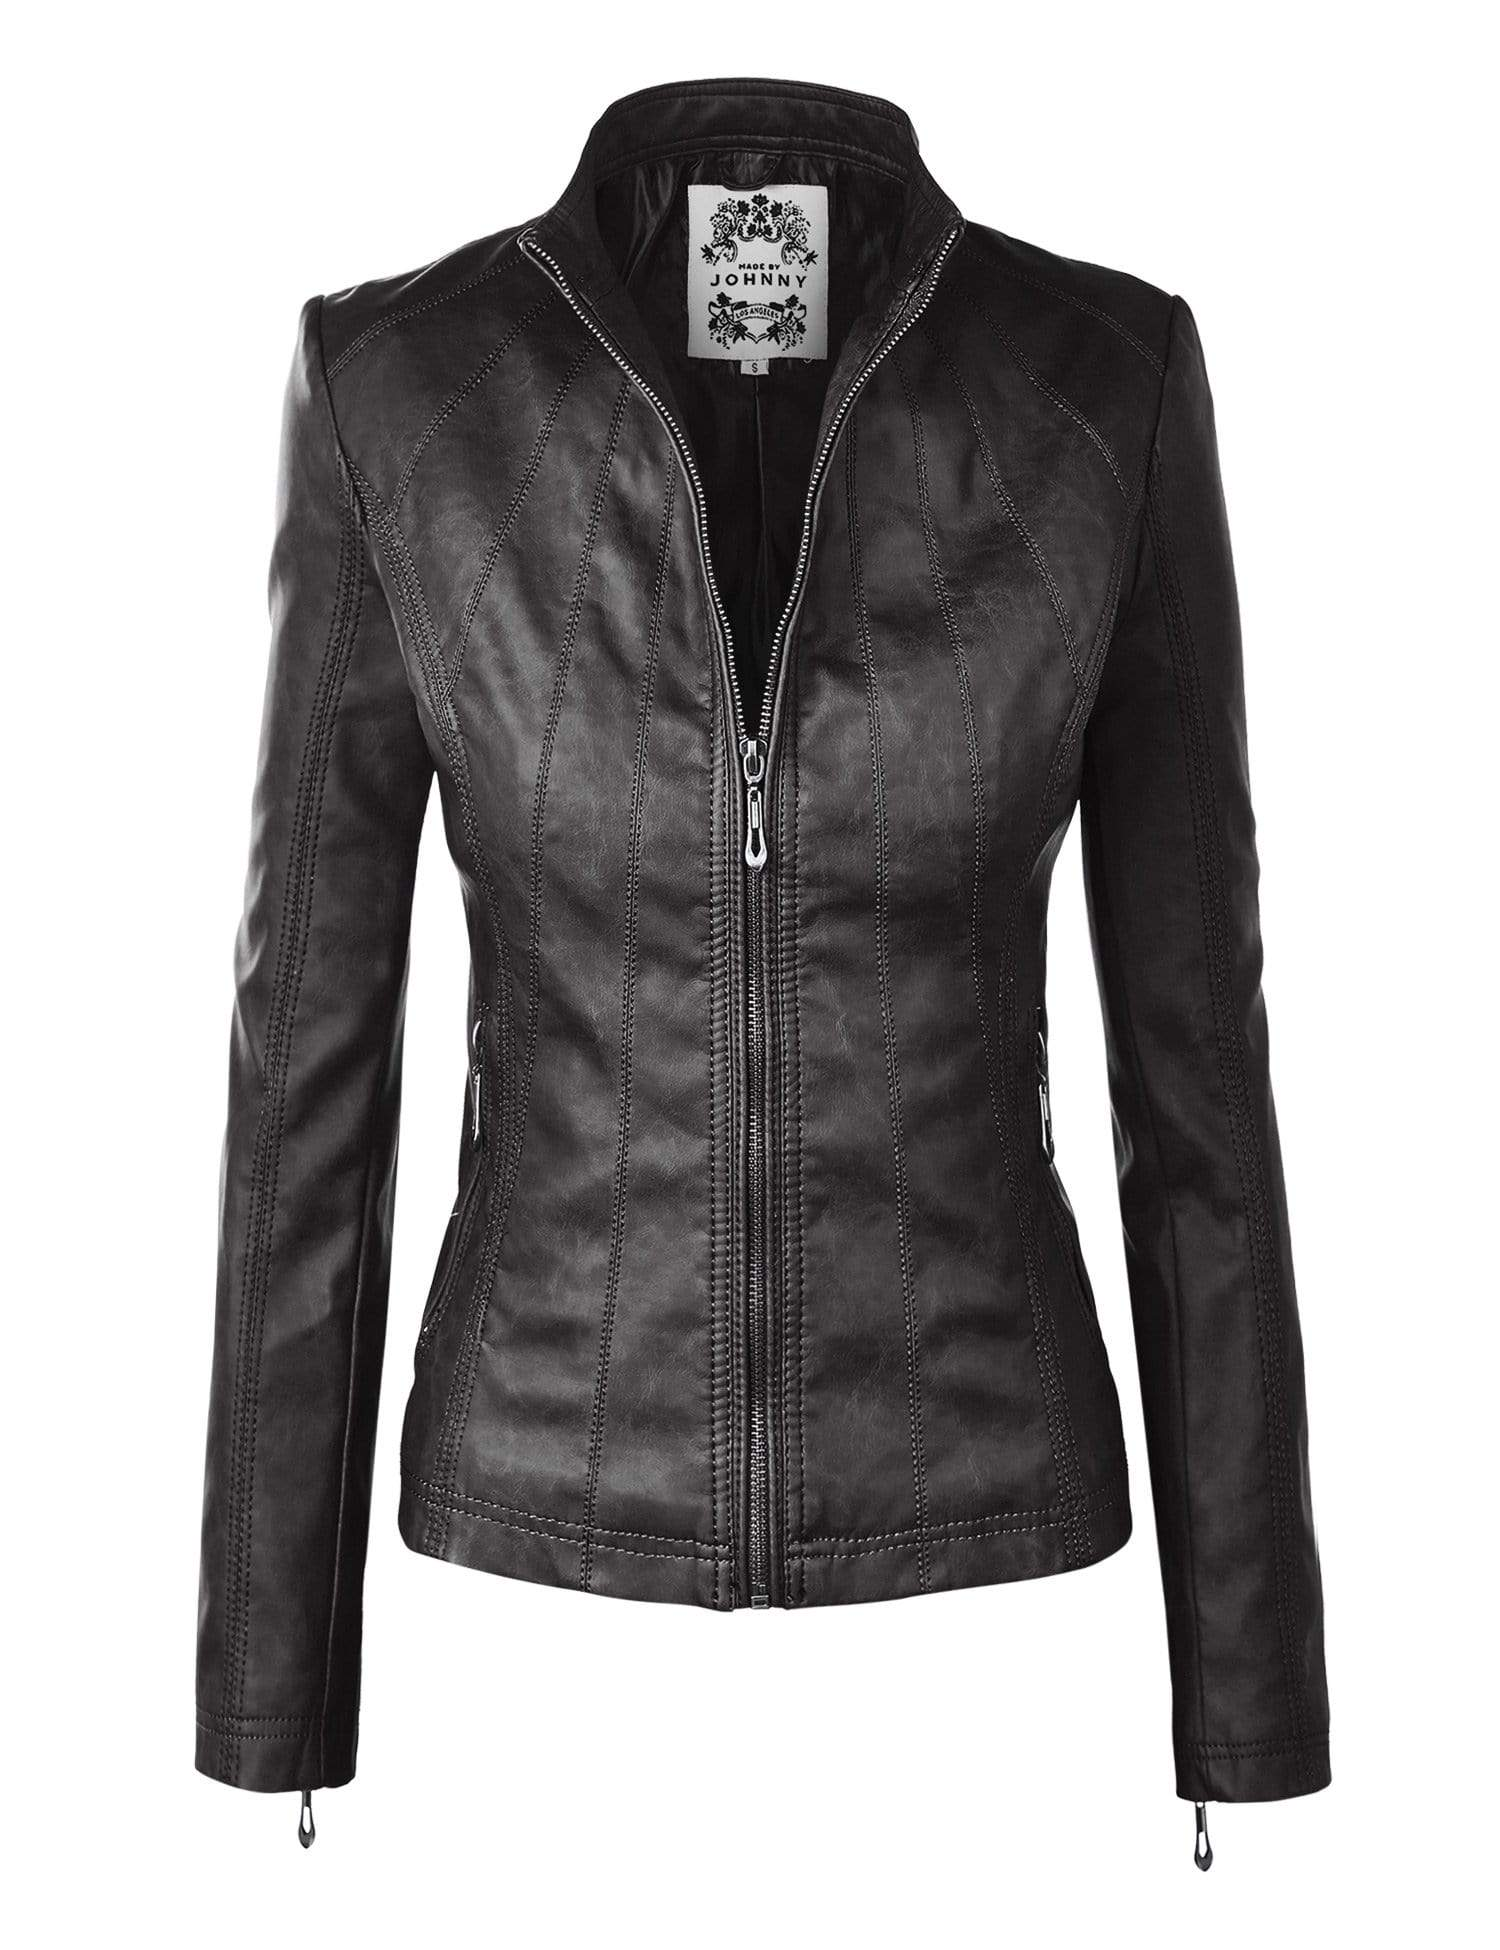 DAILYHAUTE Women's jacket BLACK / XS Made By Johnny MBJ Womens Faux Leather Zip Up Moto Biker Jacket with Stitching Detail